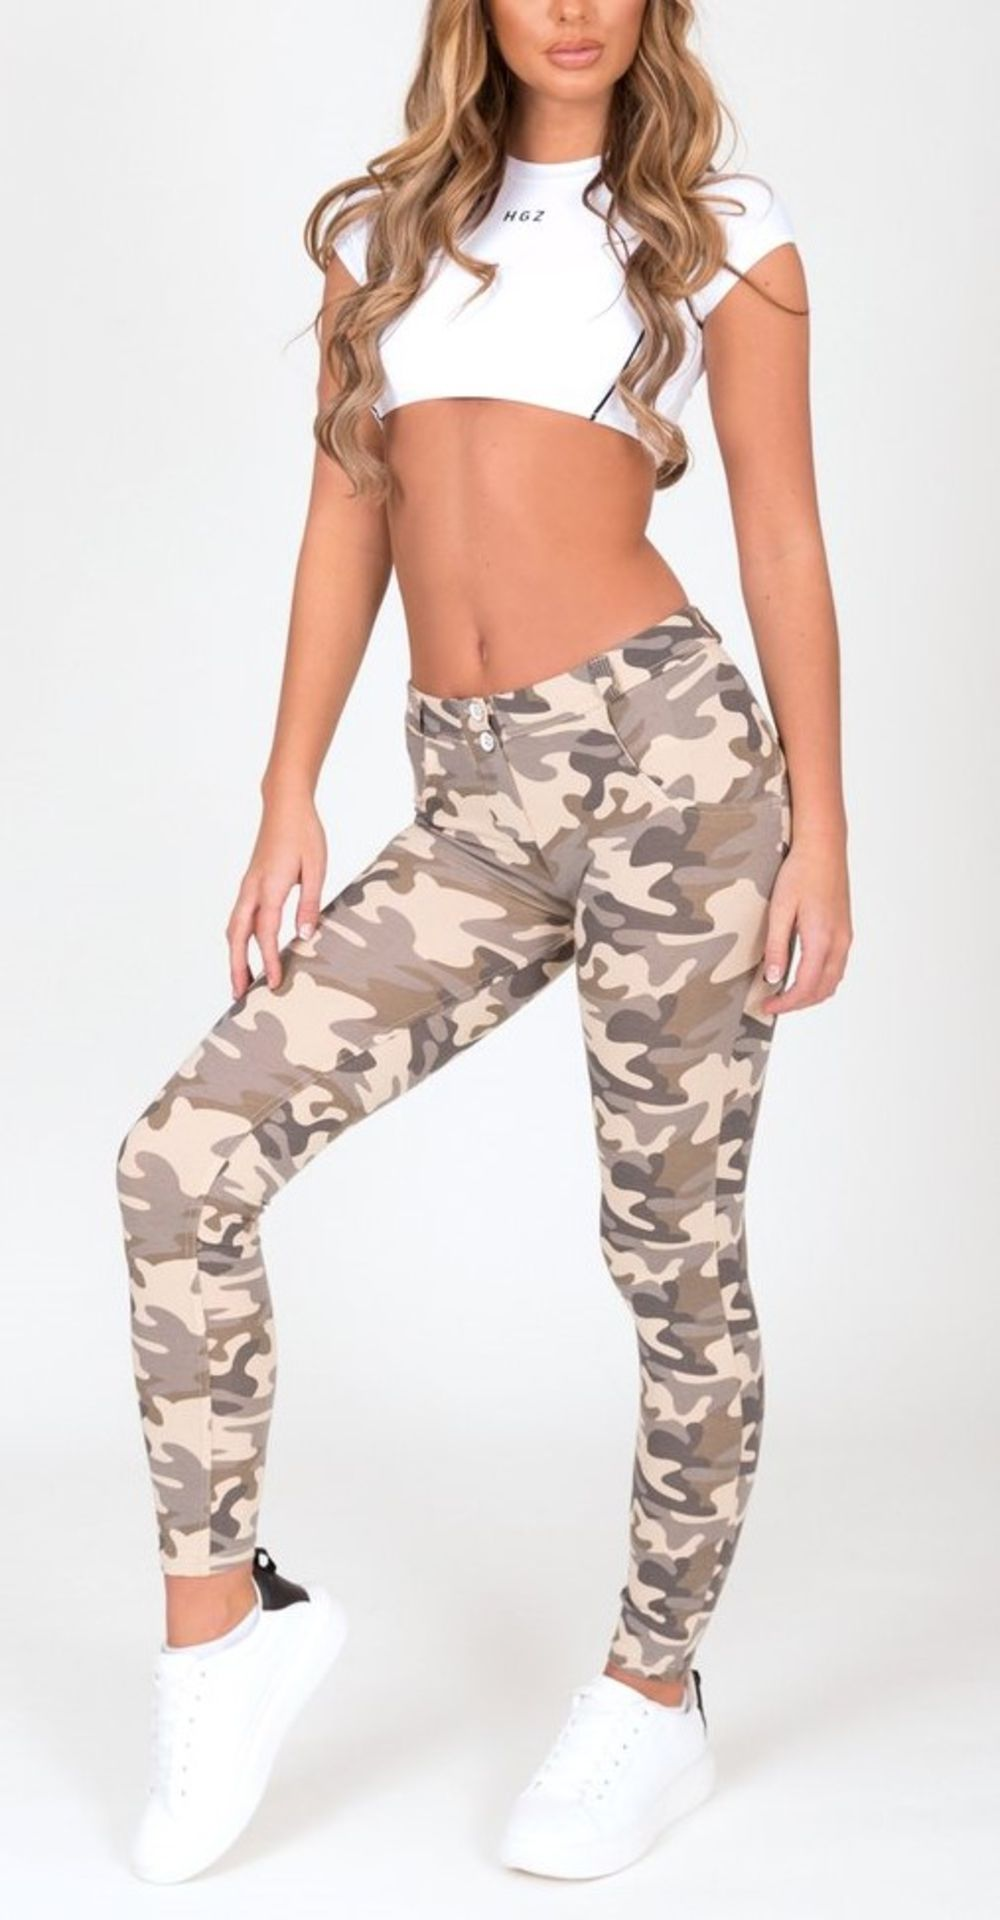 11 X BRAND NEW HUGZ JEANS DESIGNER BRANDED CAMO LIGHT COL JEGGINGS LOW WAIST SIZES 8 - S (4) & 6 -